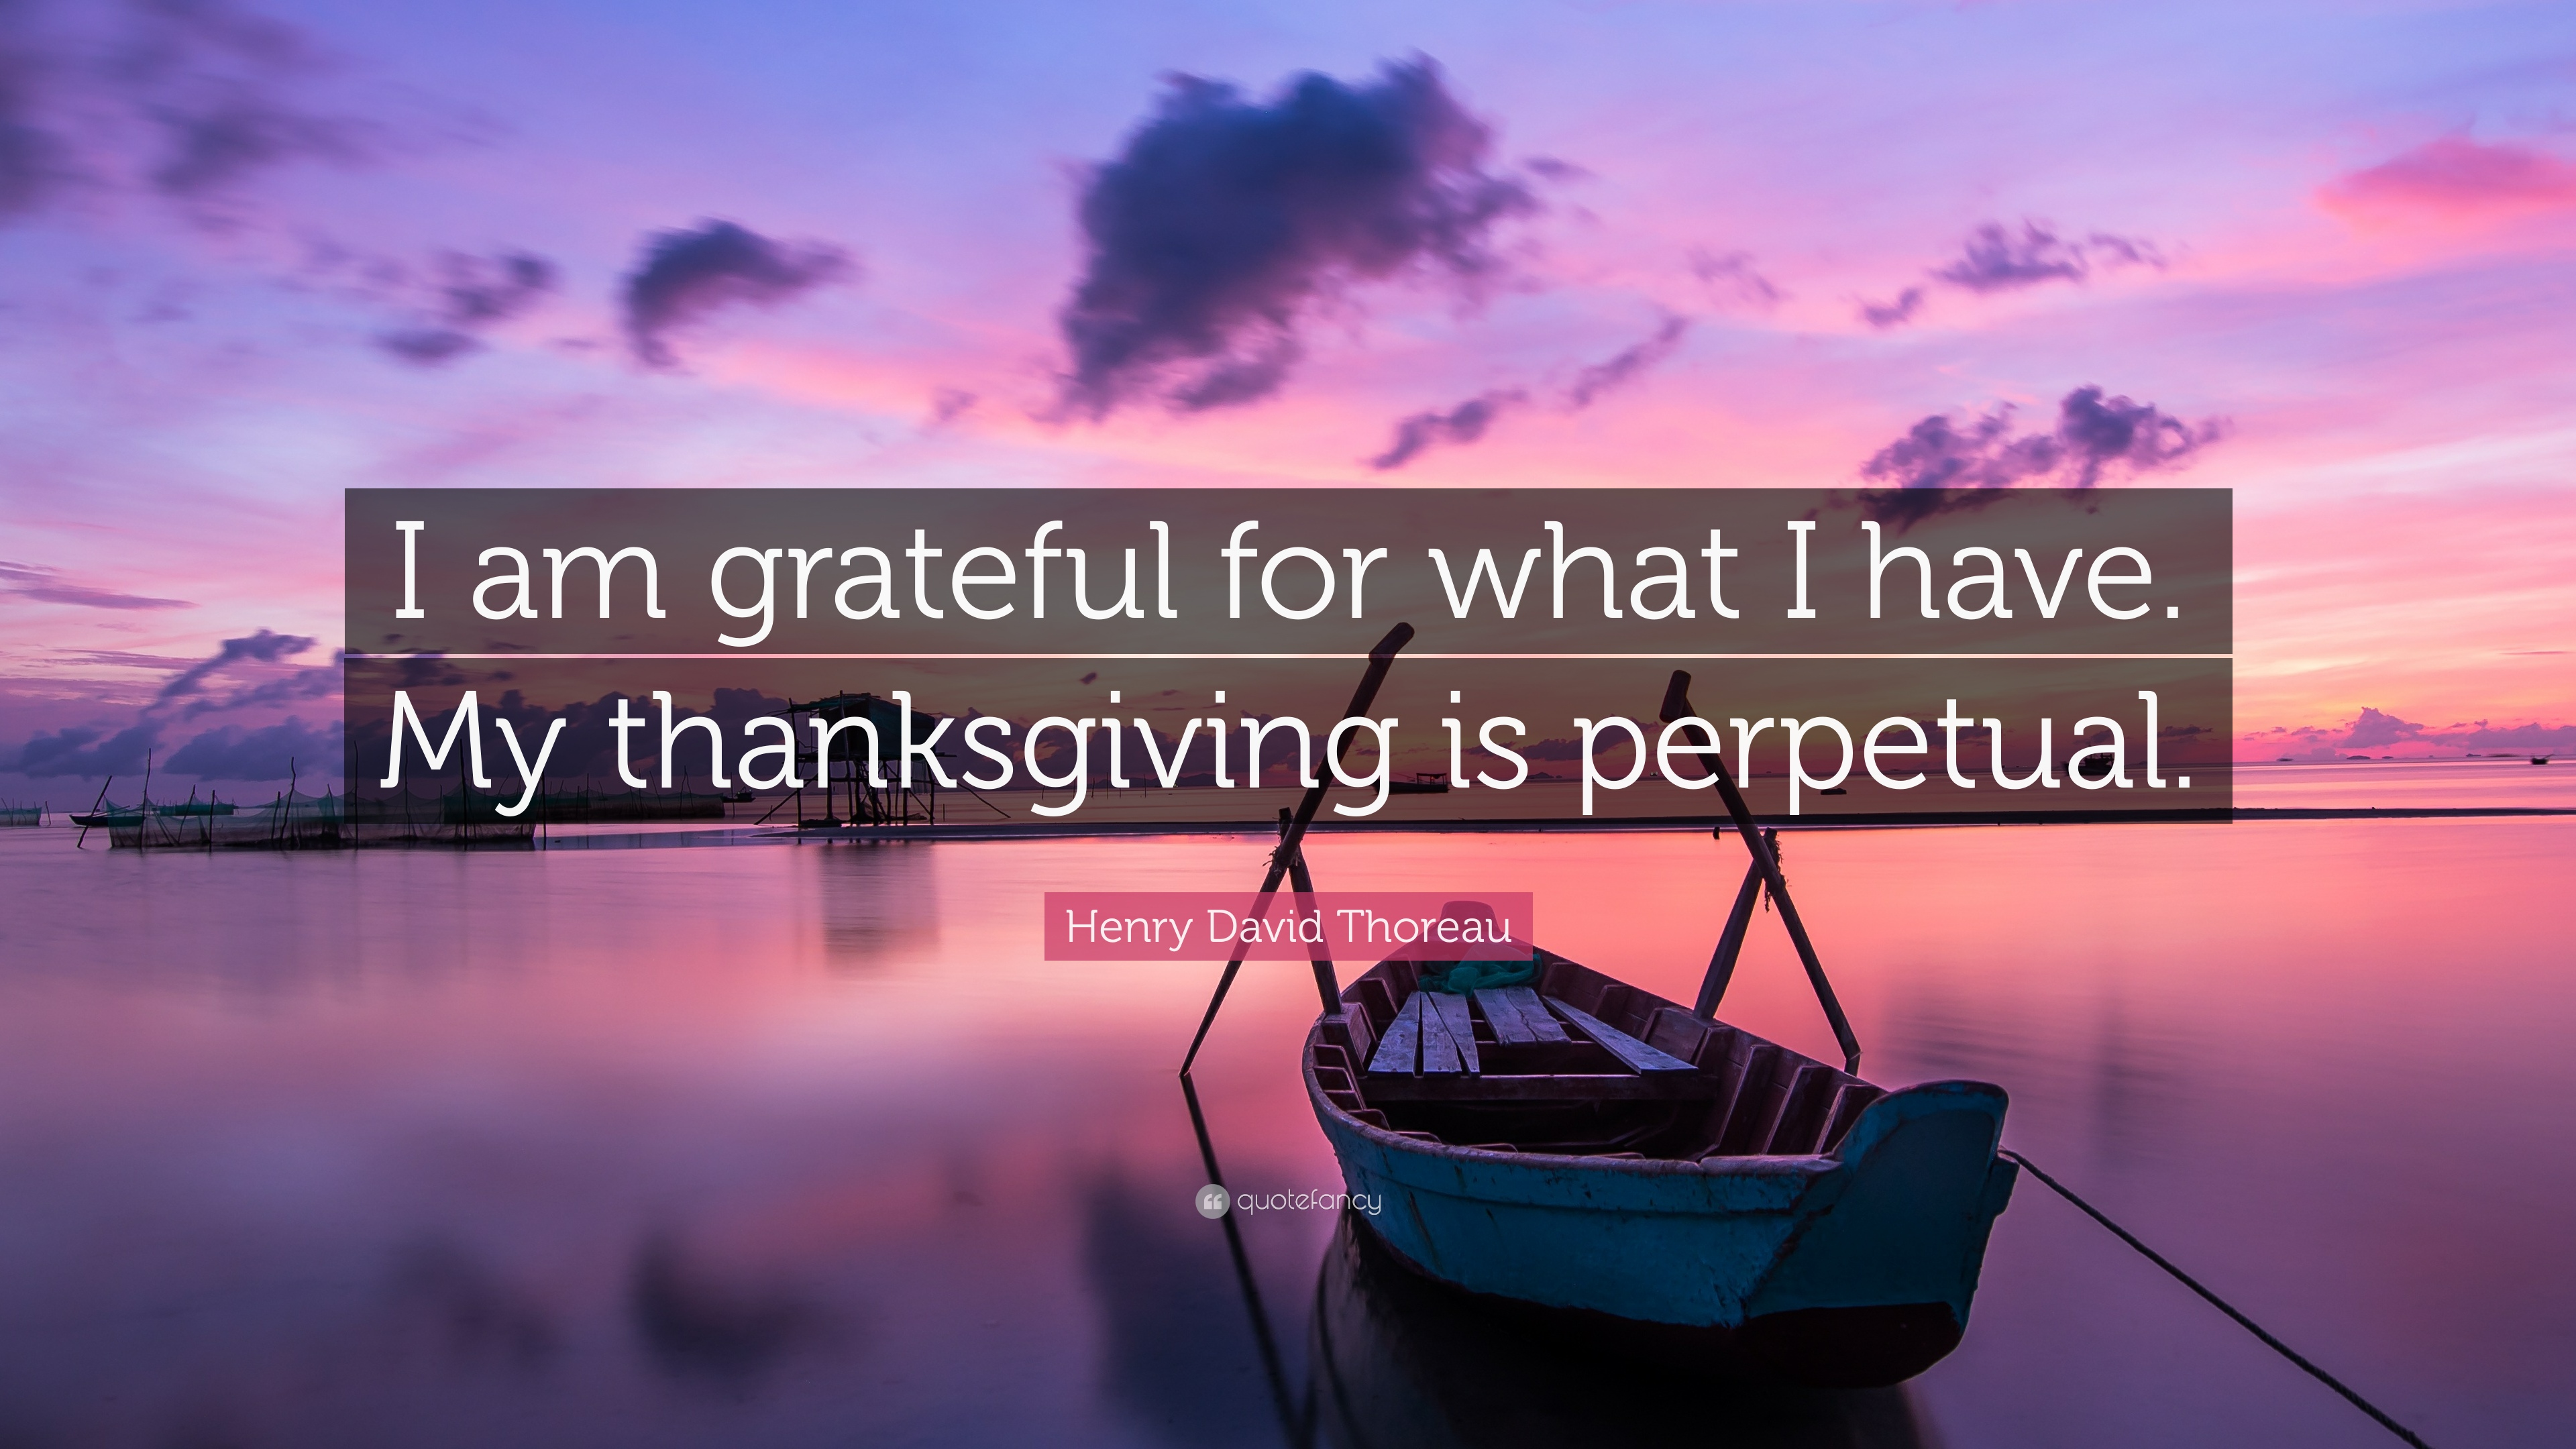 Henry David Thoreau Quote I Am Grateful For What I Have My